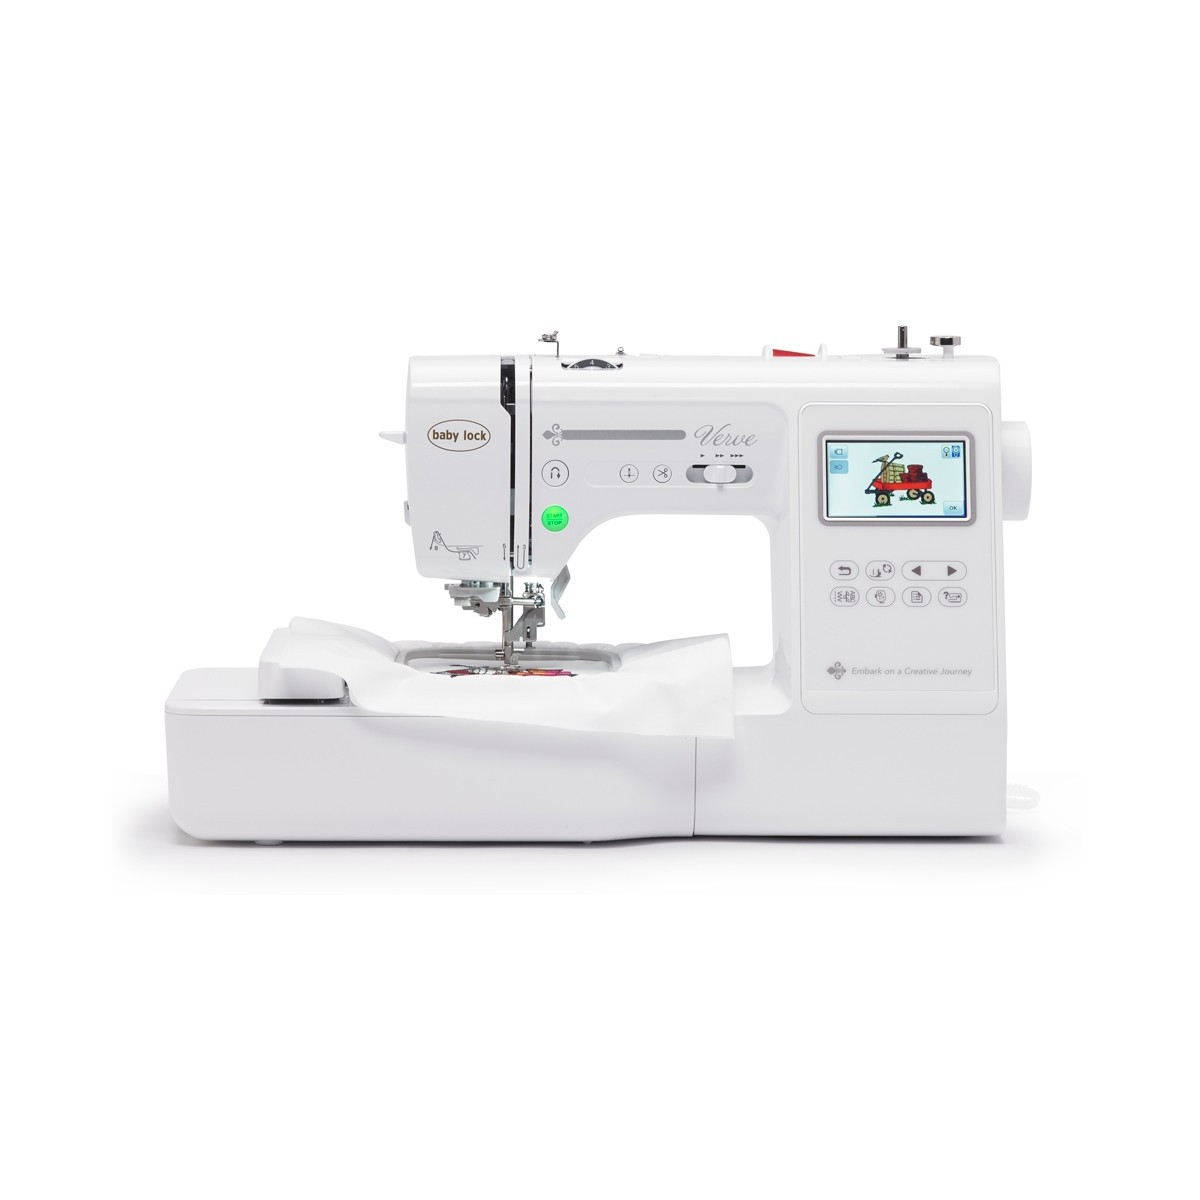 Embroidery Machine Best Of Baby Lock Verve Sewing Quilting & Embroidery Machine Of Innovative 43 Pictures Embroidery Machine